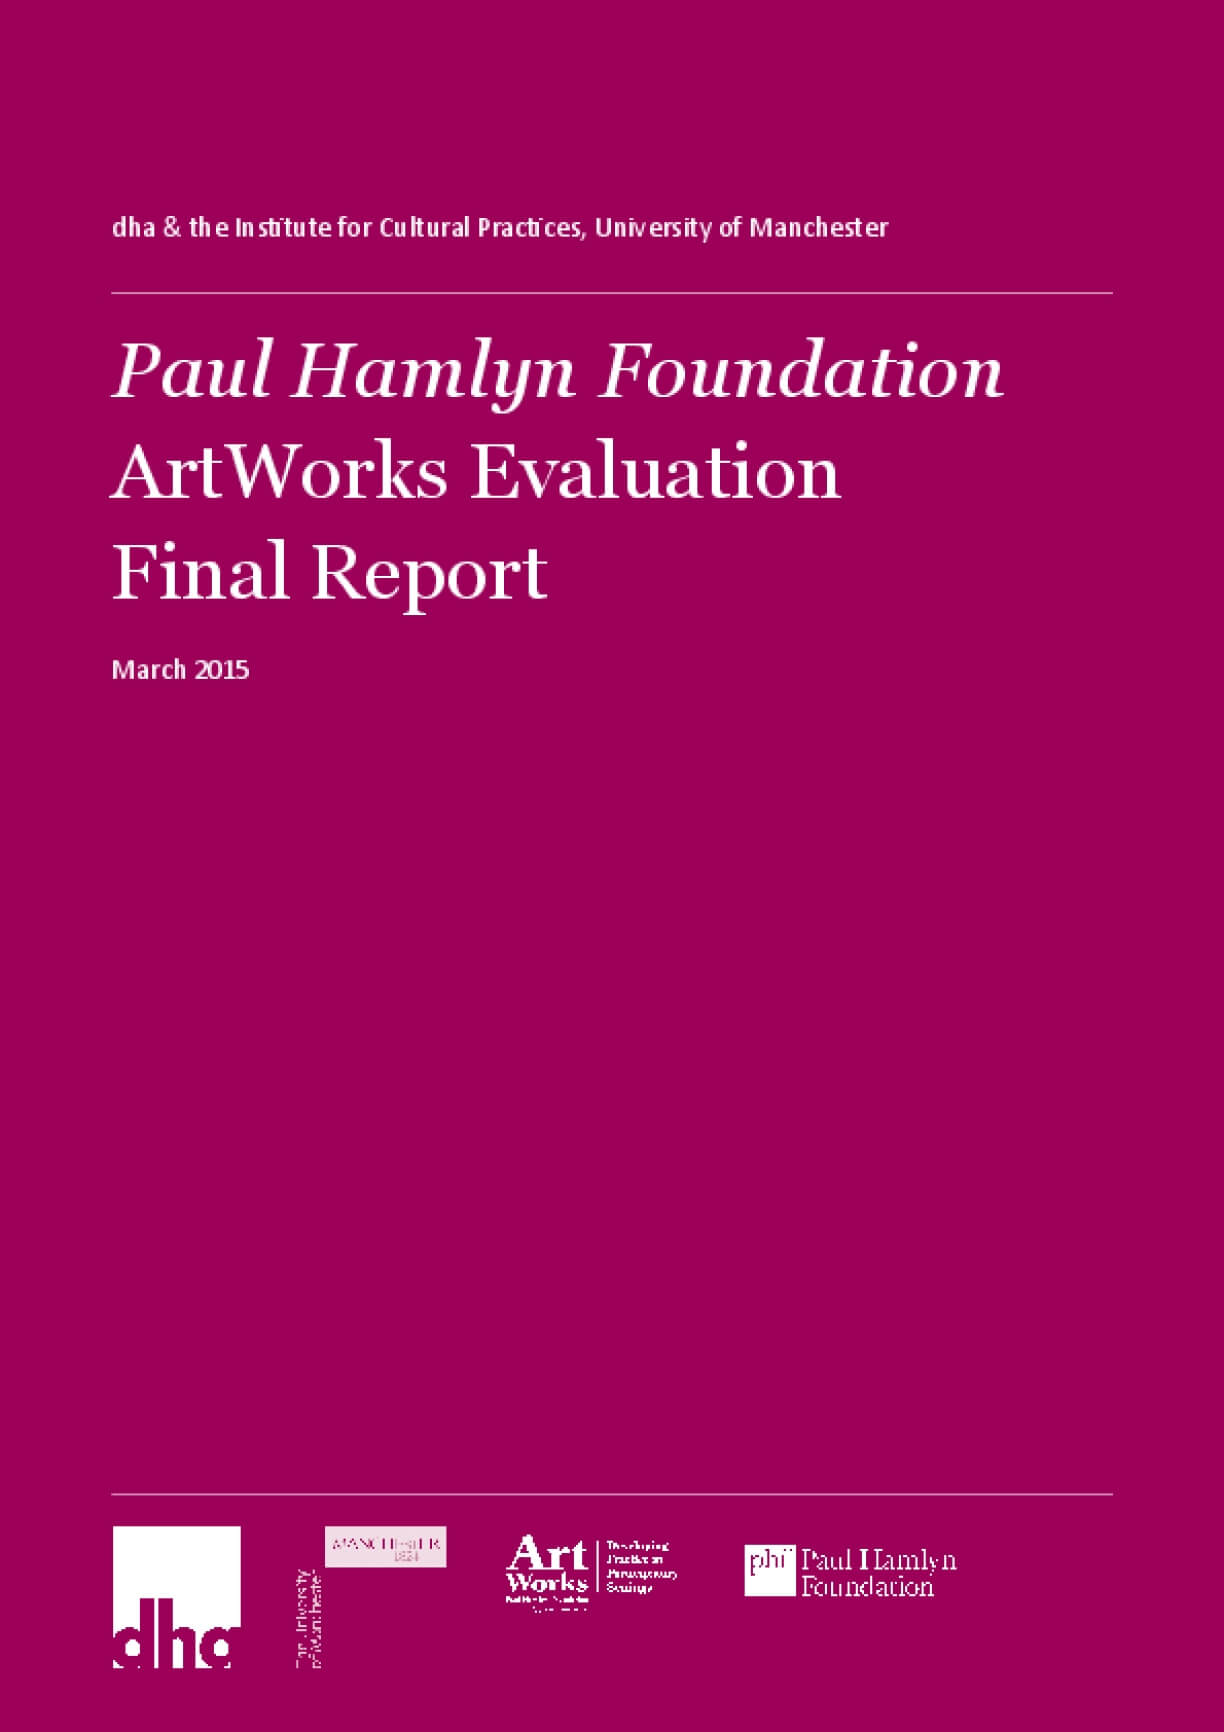 ArtWorks Evaluation Final Report